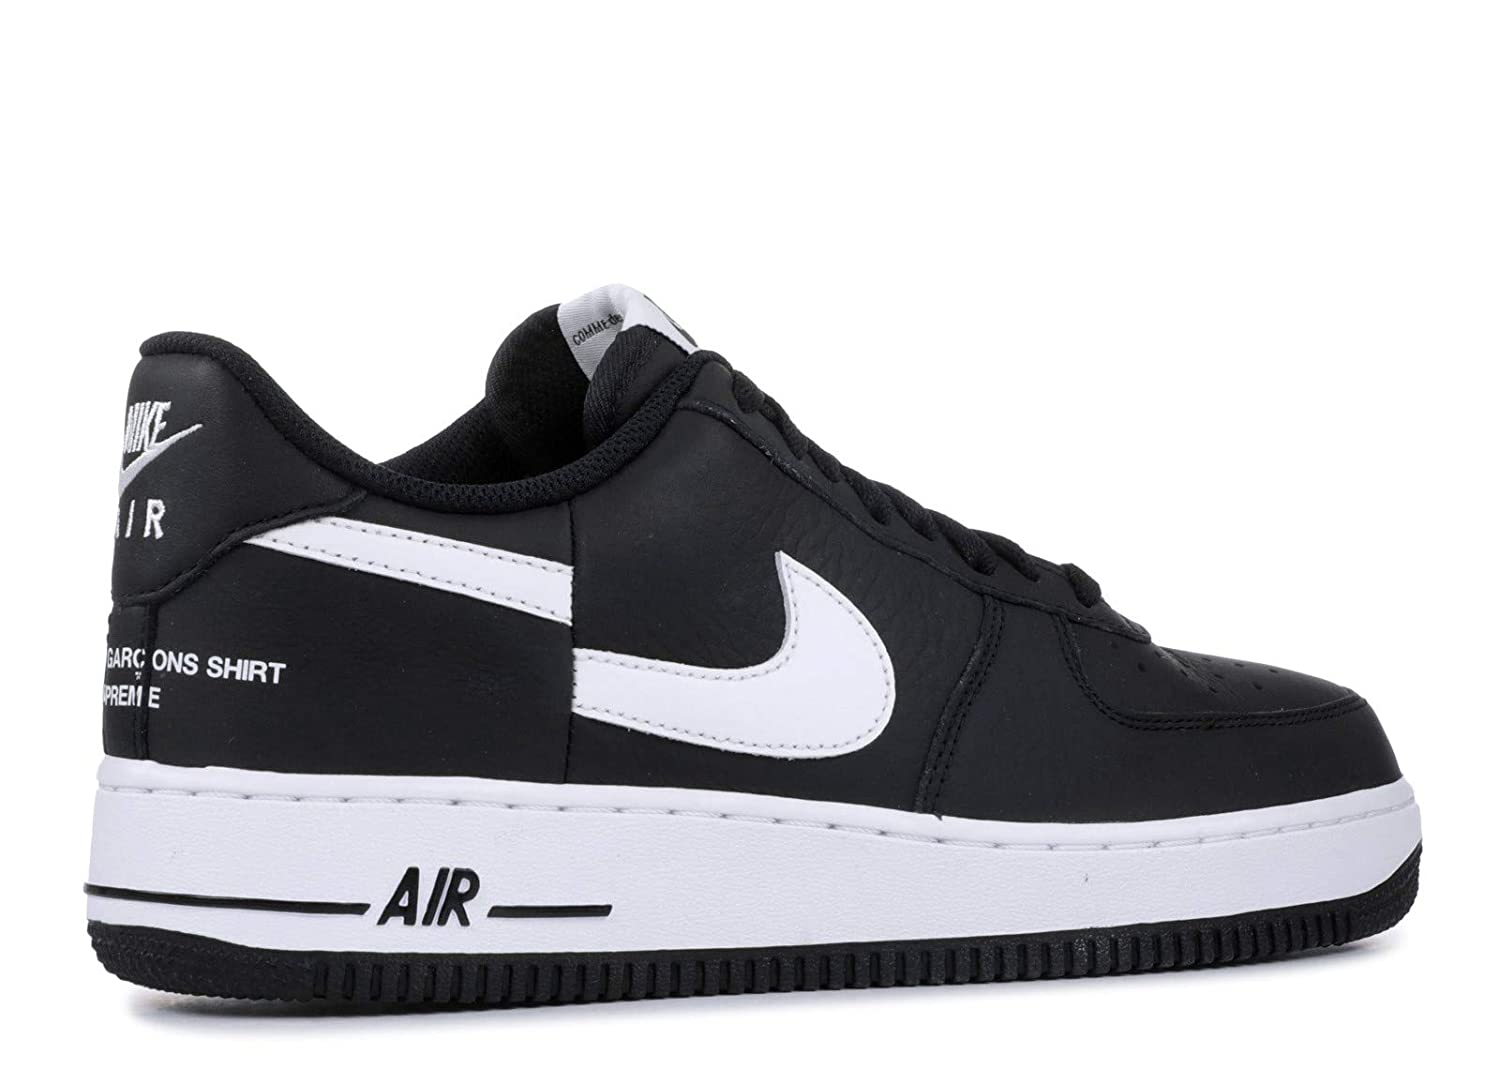 save off 8e34a e7d12 AIR Force 1 / Supreme/CDG 'COMMES DES Garcons' - AR7623-001